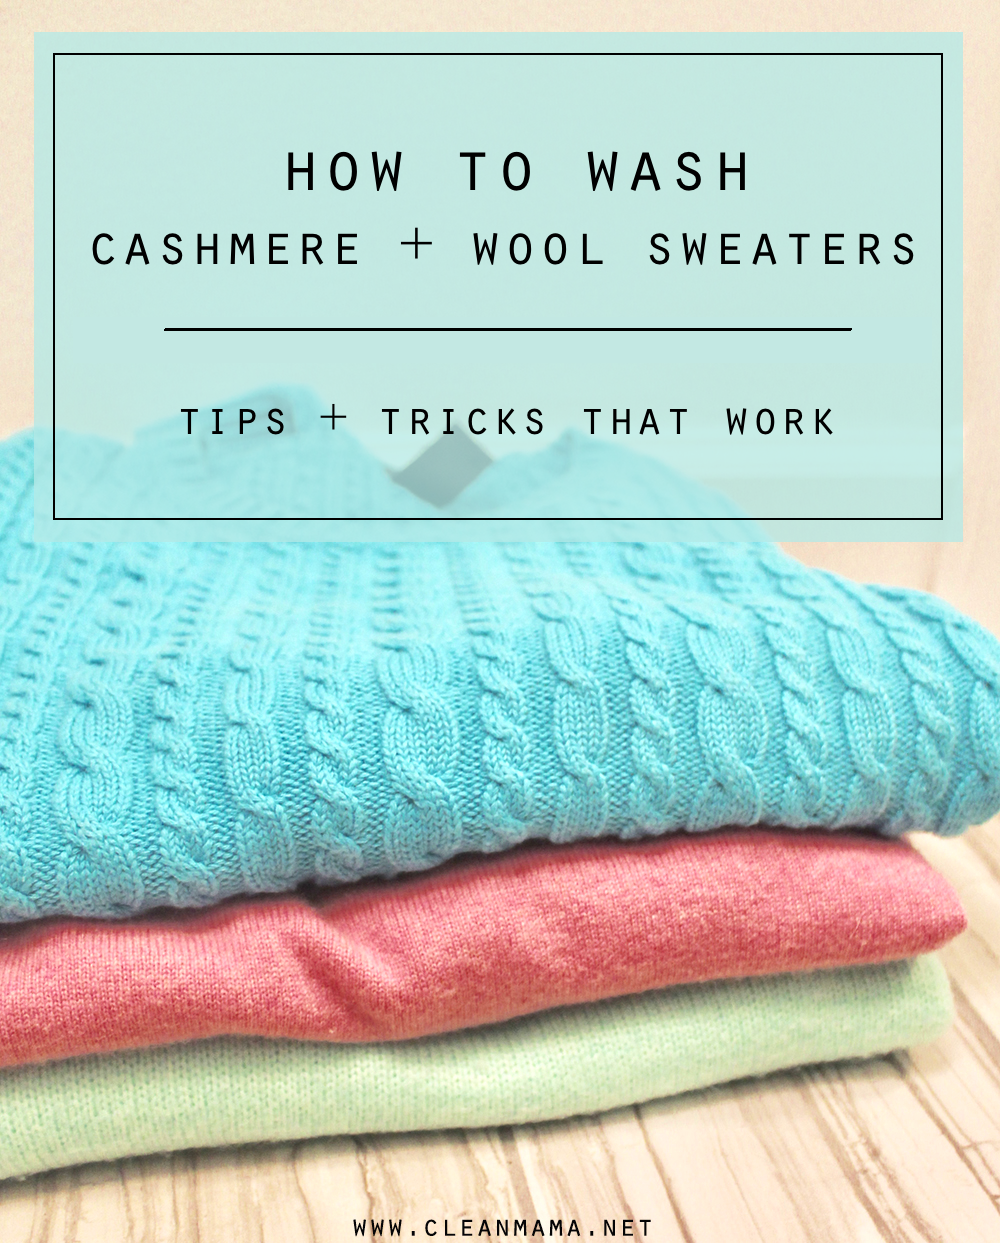 How To Wash Cashmere Wool Sweaters Cleaning Hacks Deep Cleaning Tips Spring Cleaning